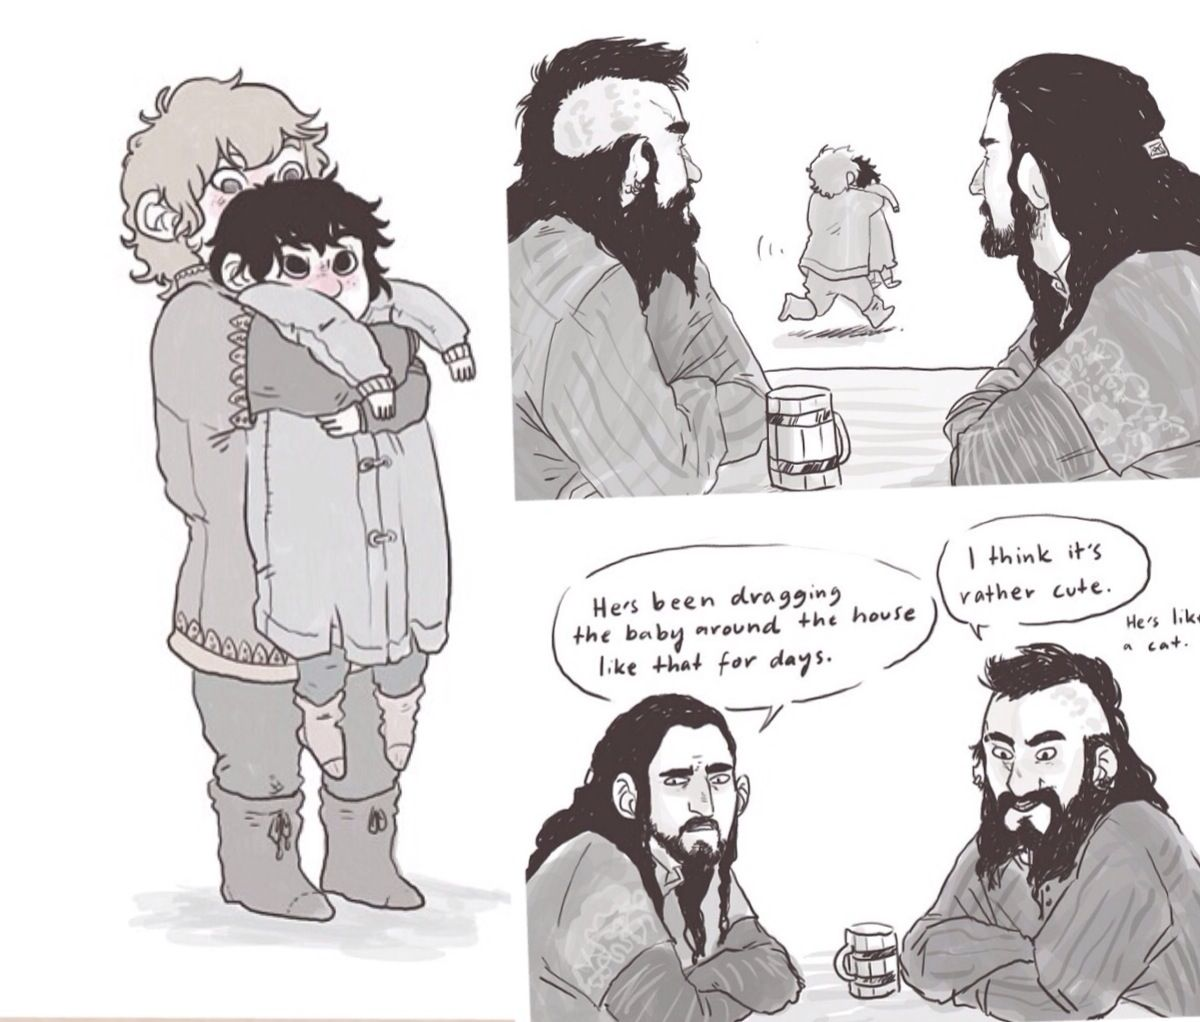 Fili and Kili and Thorin's discussion with Dwalin  Poor